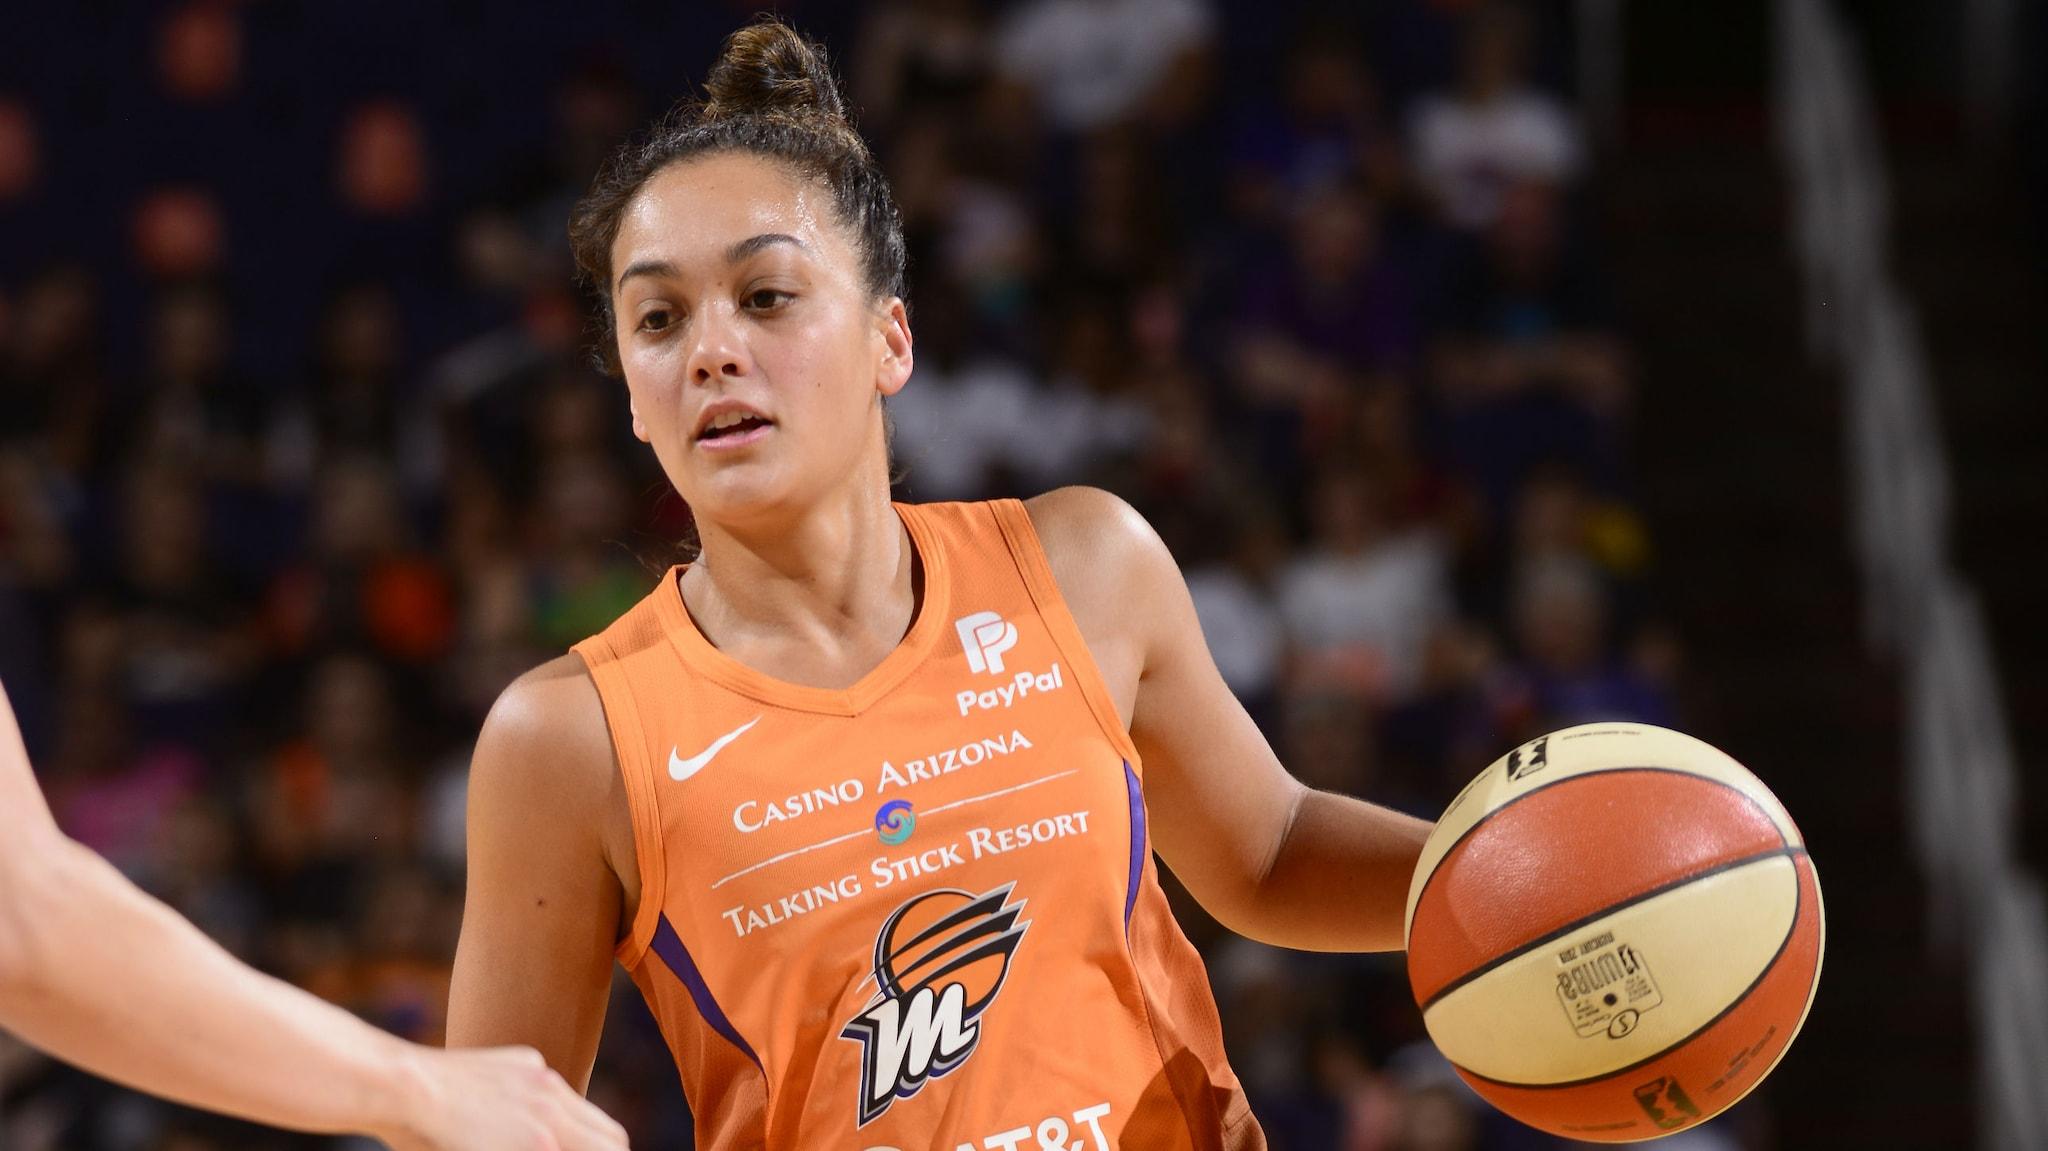 Leilani Mitchell Named 2019 WNBA Most Improved Player - WNBA.com - Official Site of the WNBA